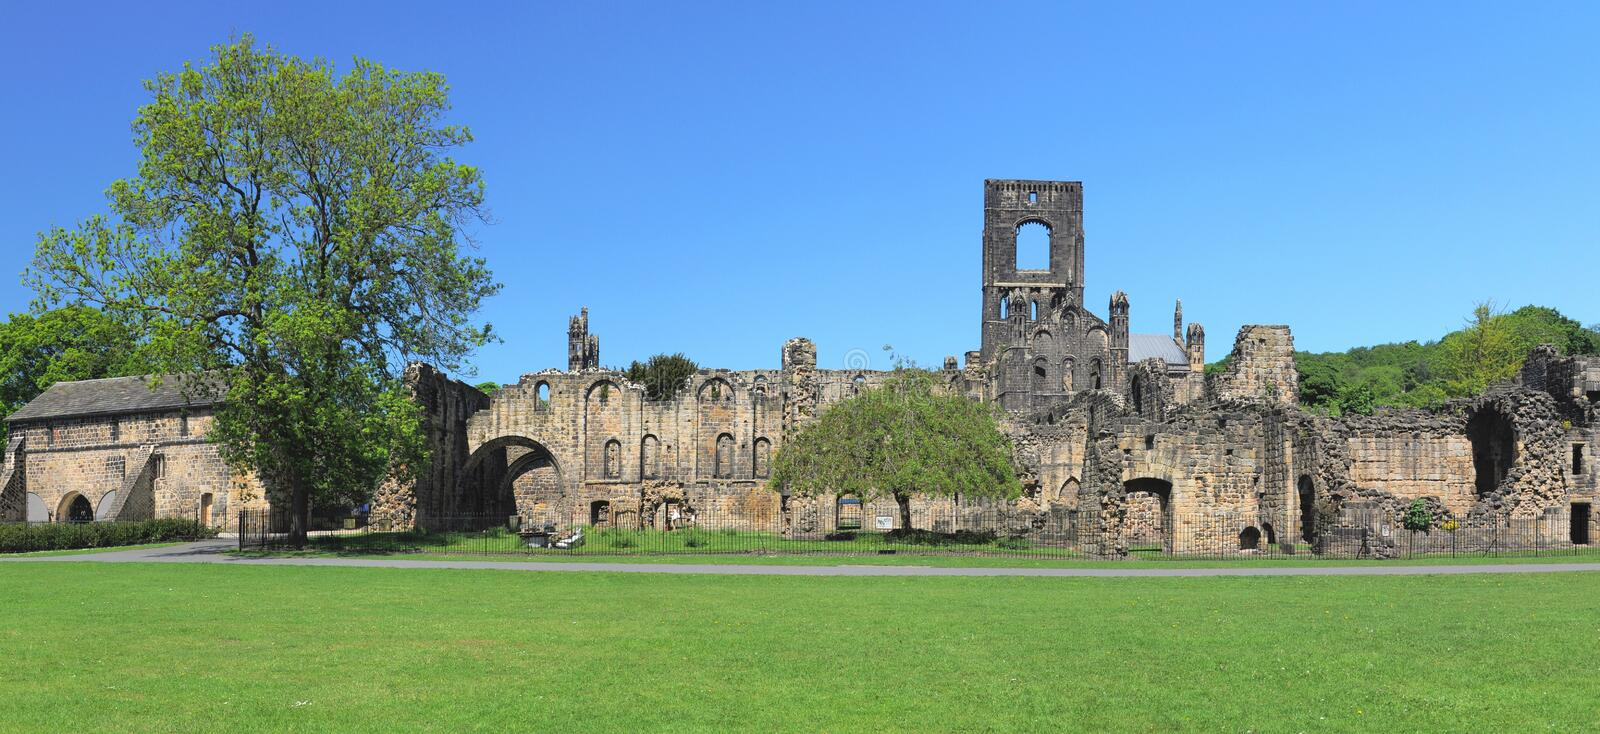 Wide Panorama Of Kirkstall Abbey Ruins, Leeds, UK Royalty Free Stock Image